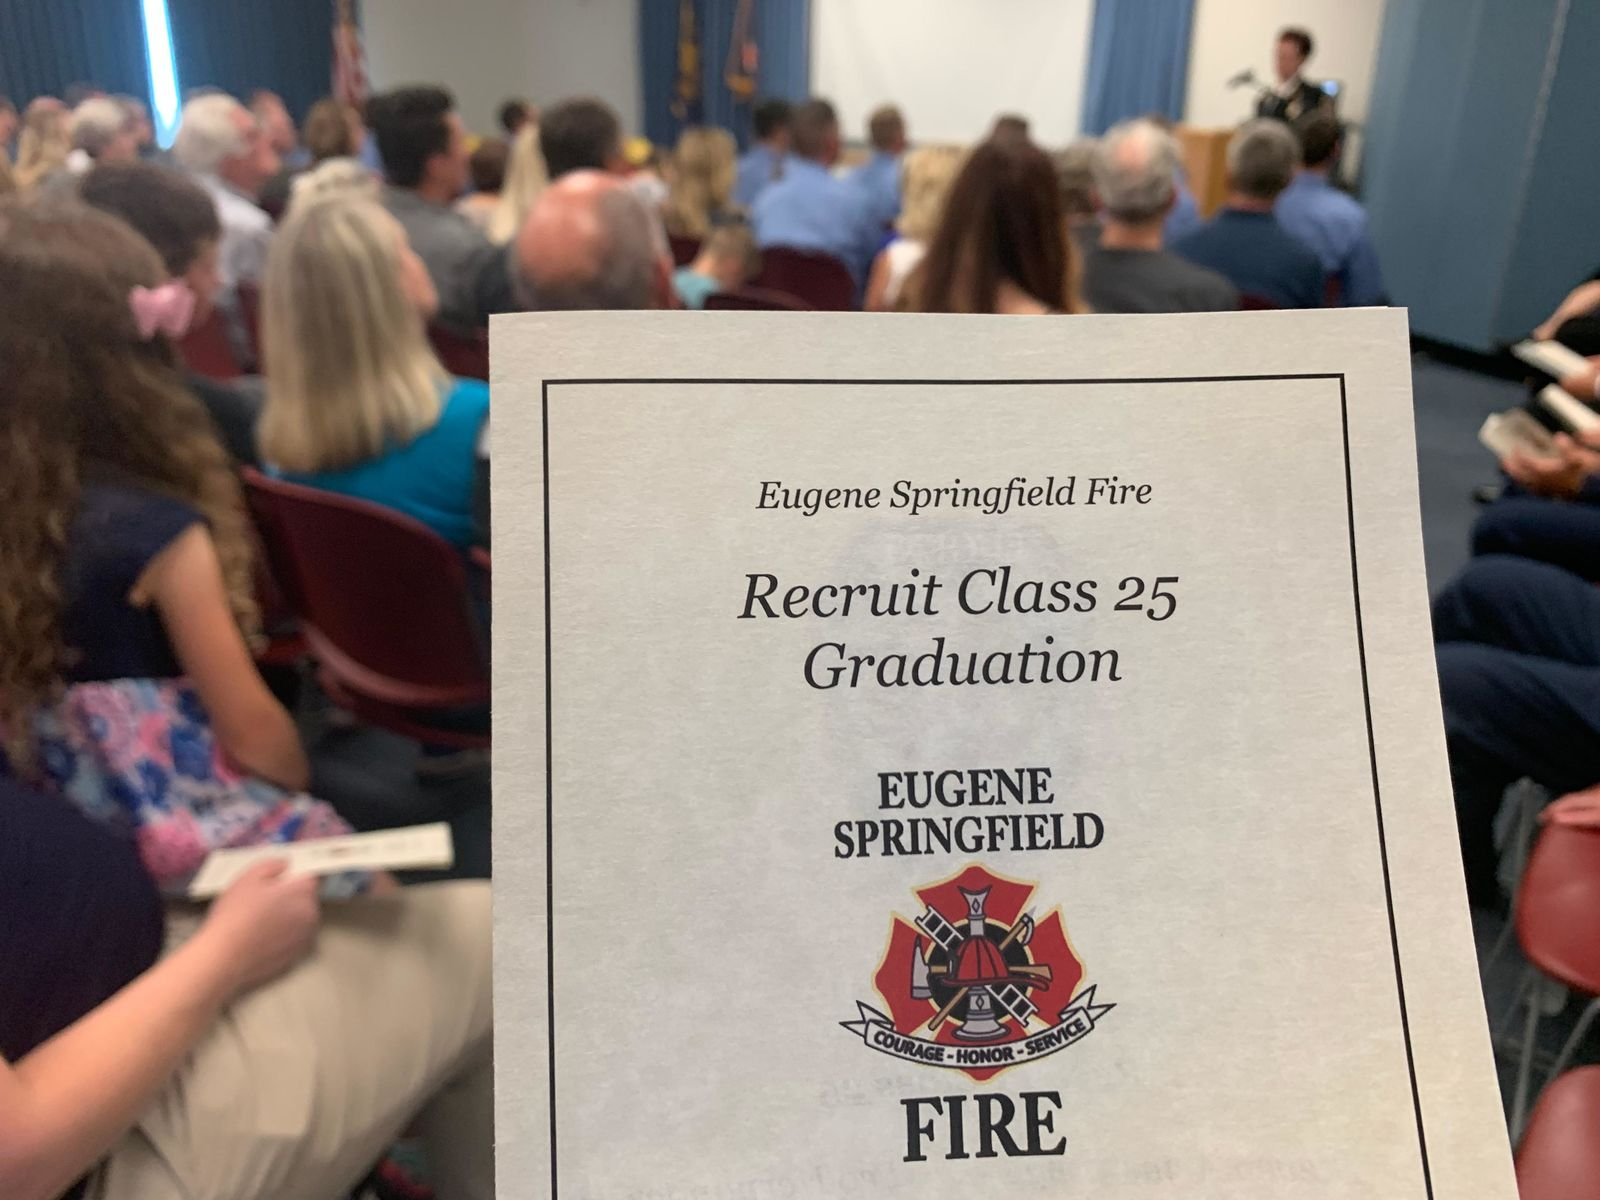 <p>11 new firefighters received their badge and helmet, graduating as Eugene Springfield Fire Department recruits, July 12, 219. (SBG)</p>